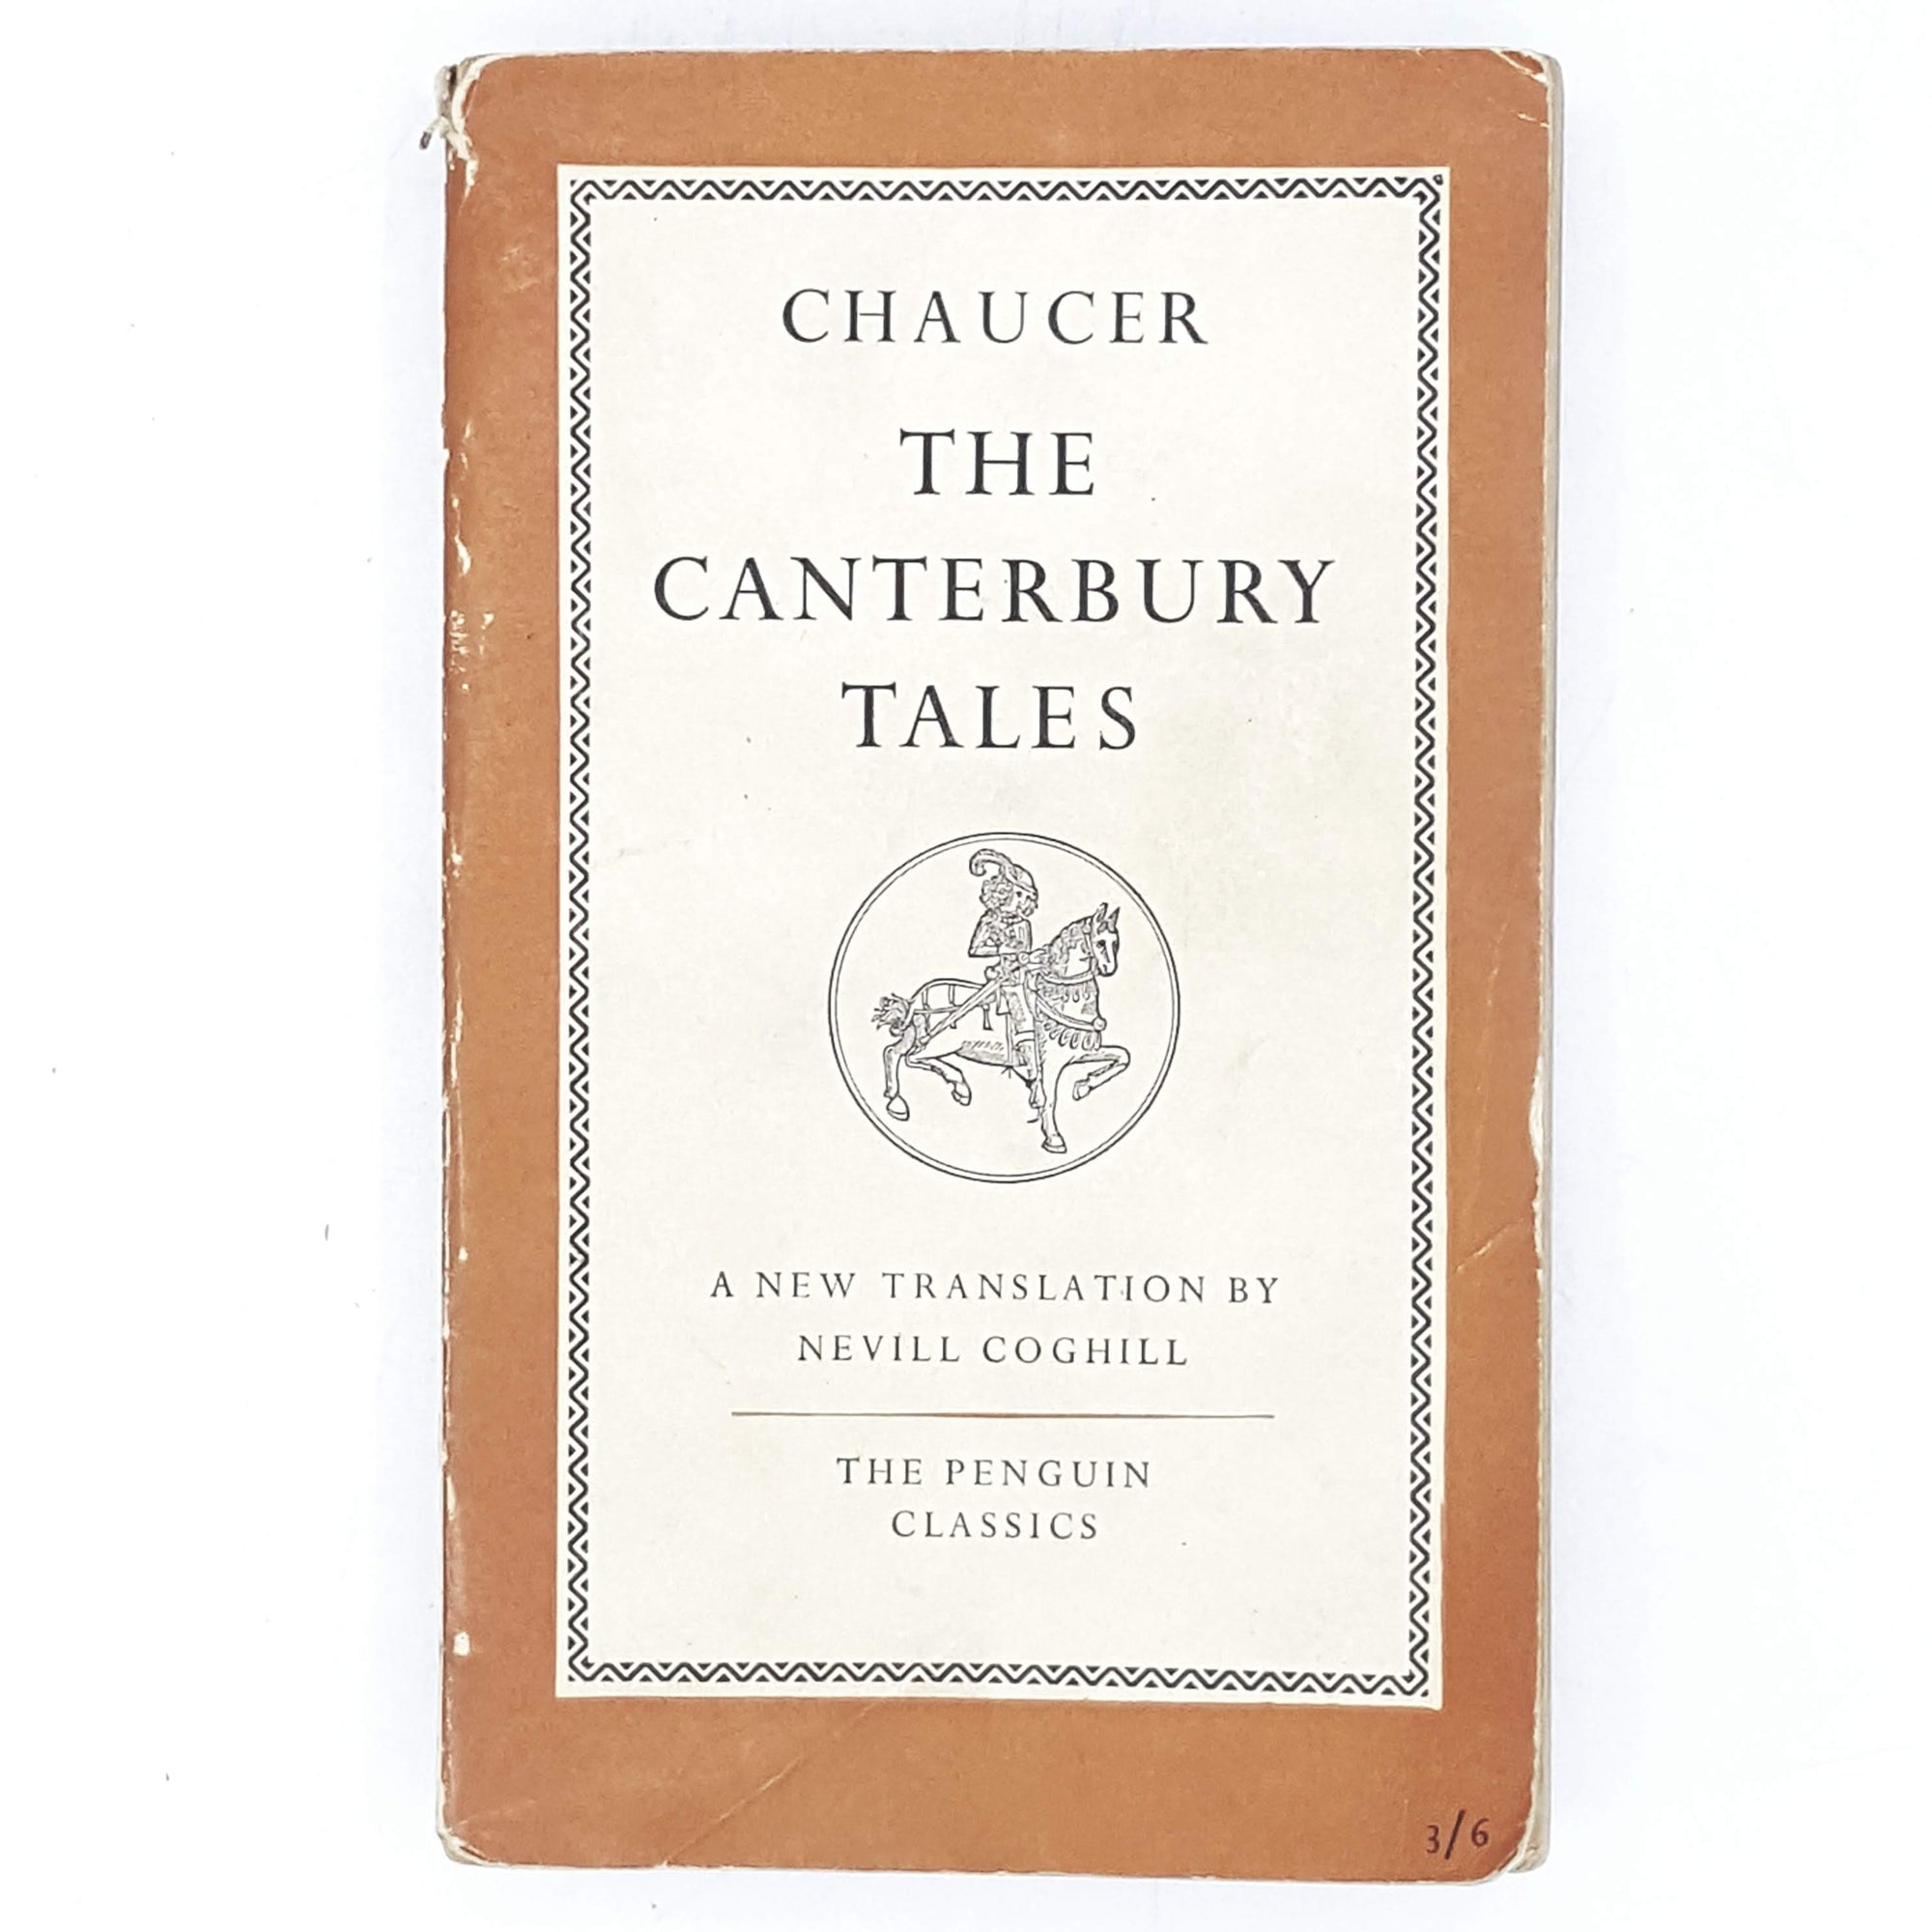 First Edition Penguin Chaucer's The Cantebury Tales 1951